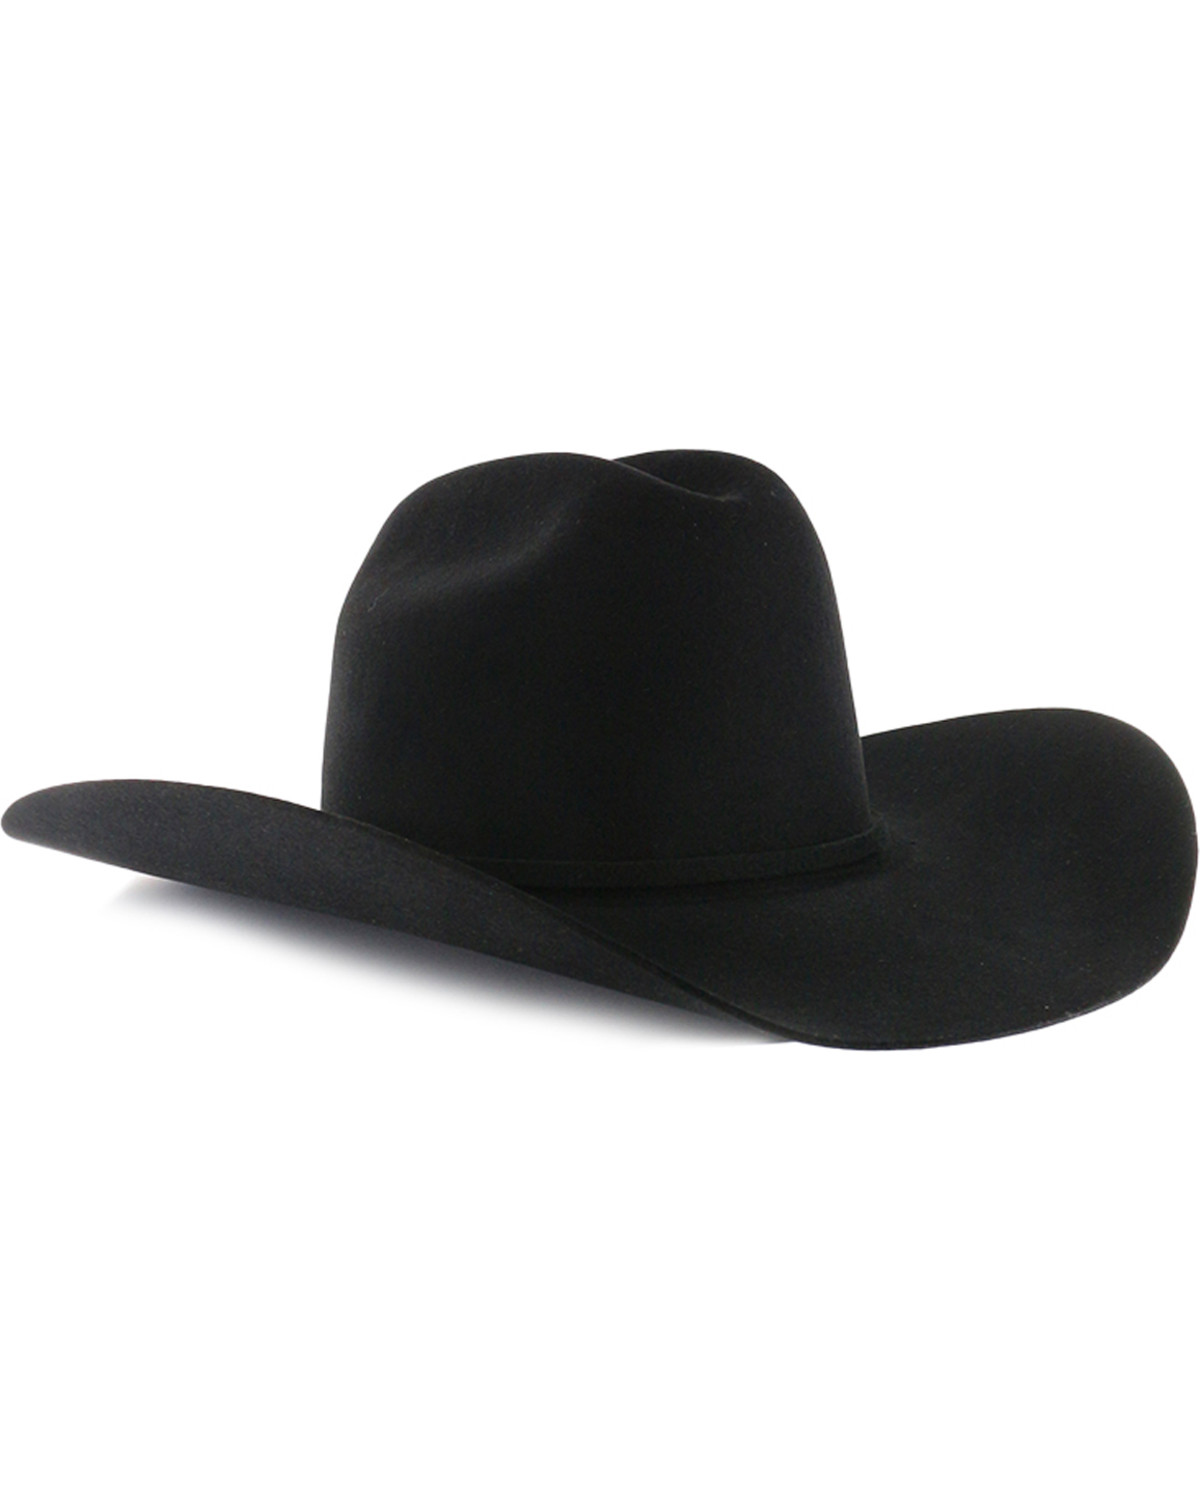 bd7eac7d Zoomed Image Rodeo King Rodeo 5X Felt Cowboy Hat, Black, hi-res. Zoomed  Image ...